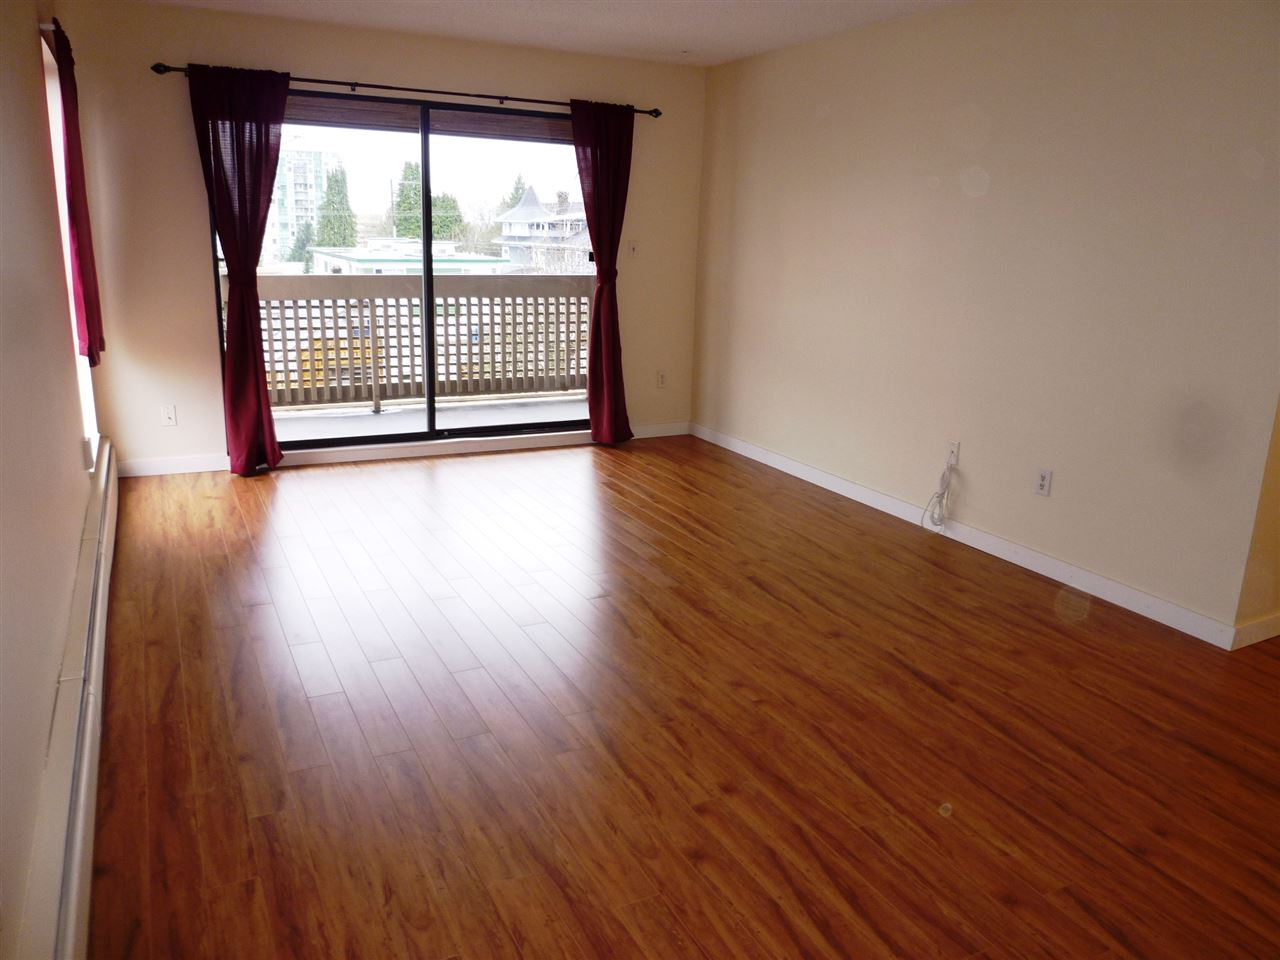 "Photo 4: 501 715 ROYAL Avenue in New Westminster: Uptown NW Condo for sale in ""VISTA ROYAL"" : MLS(r) # R2041122"